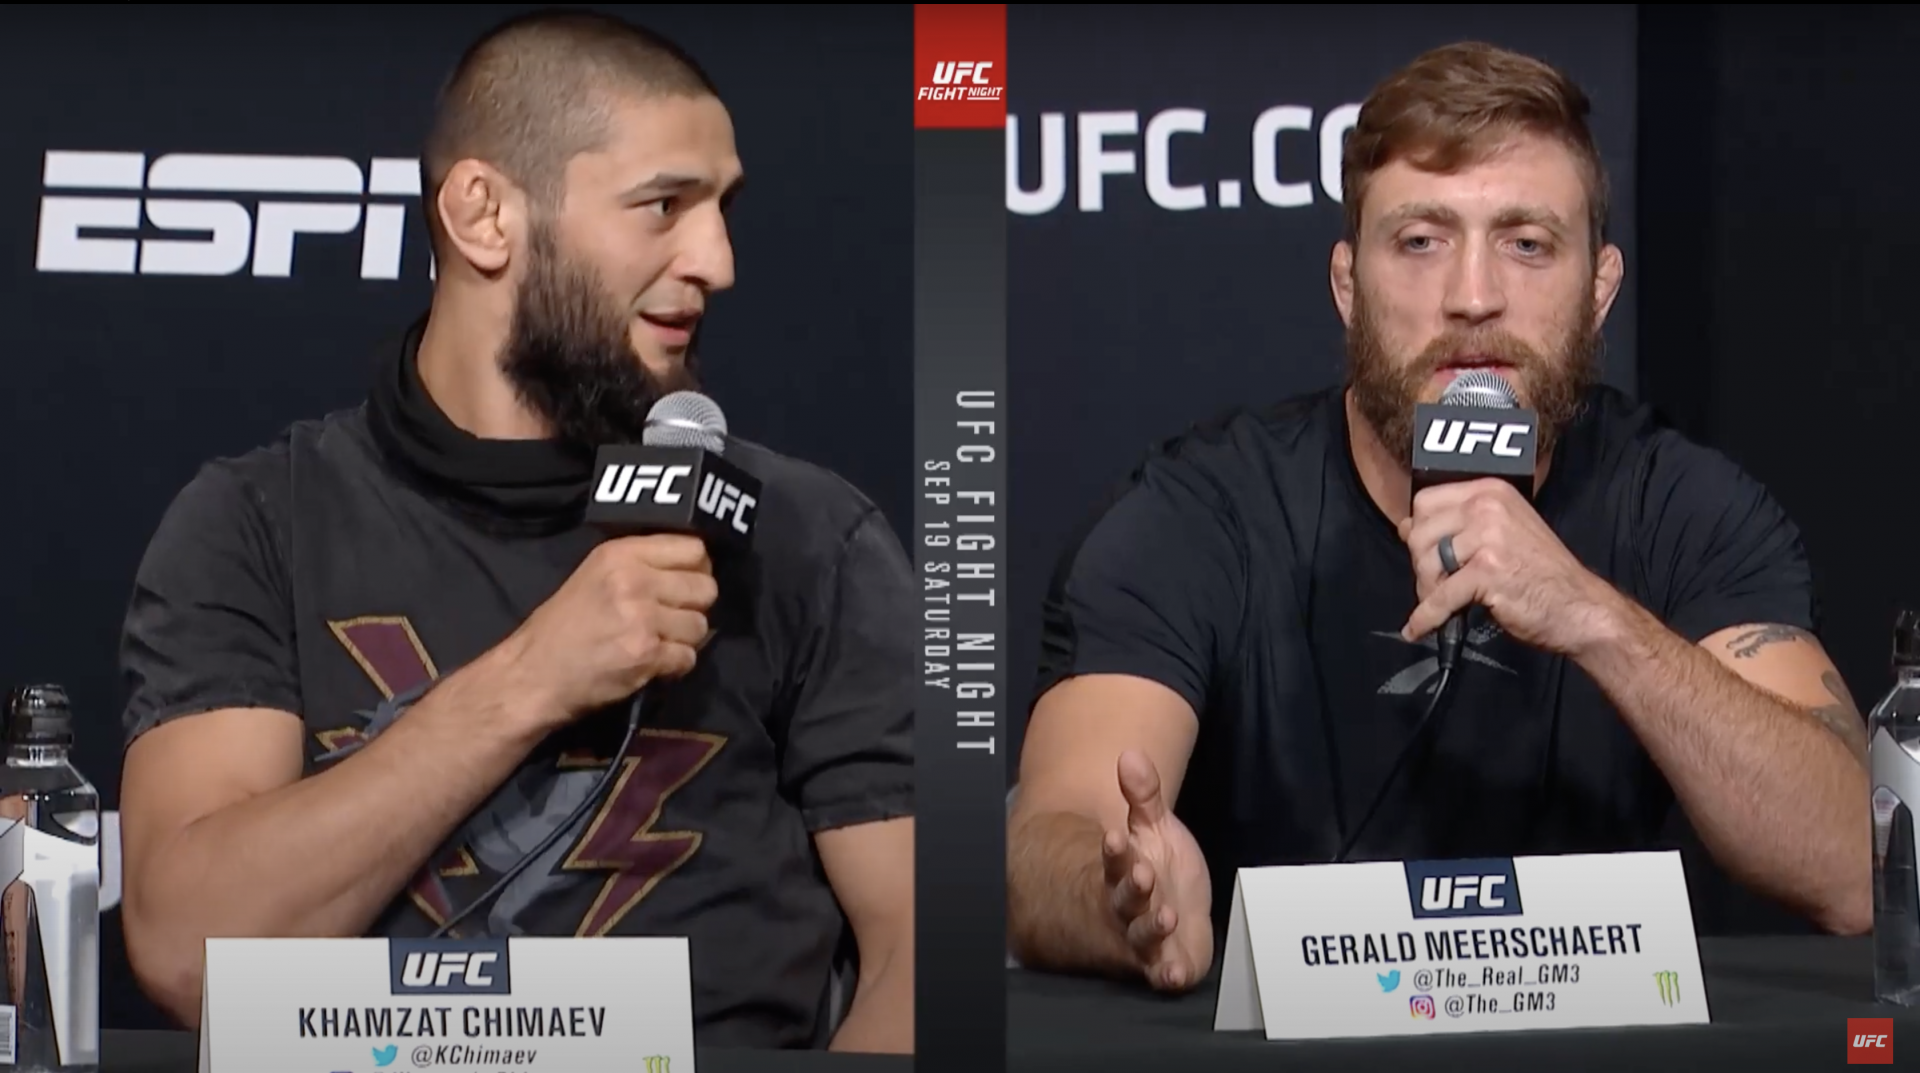 Khamzat Chimaev says he will kill Gerald Meerschaert at UFC Vegas 11 - Chimaev